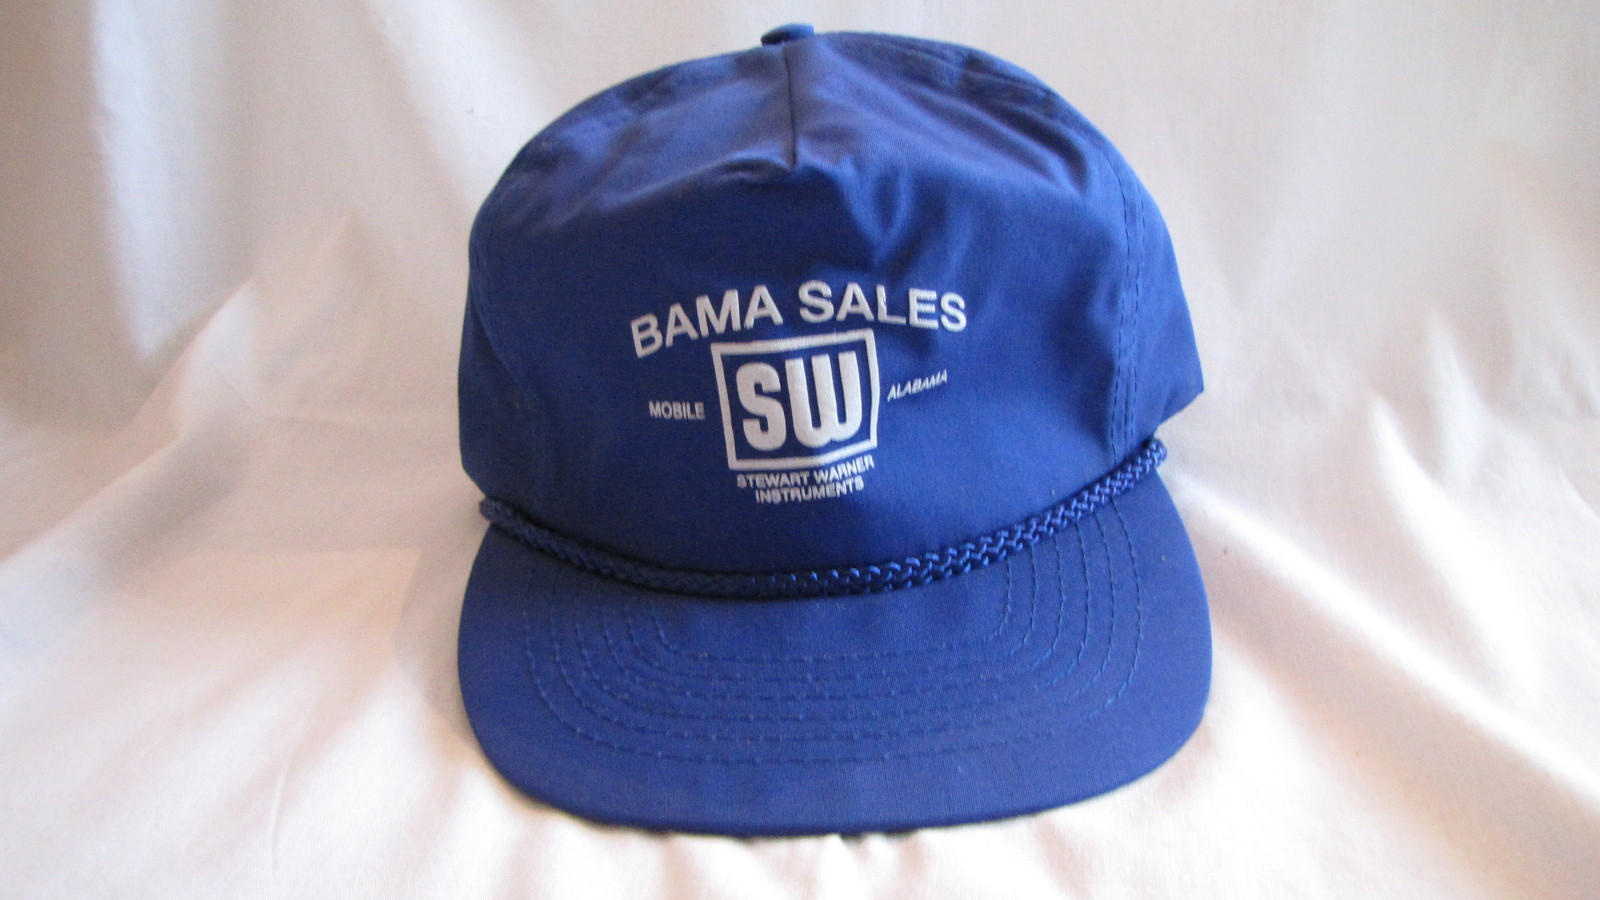 Bama Sales Stewart Warner Mobile, AL Blue Baseball Trucker Hat Snap Back VINTAGE